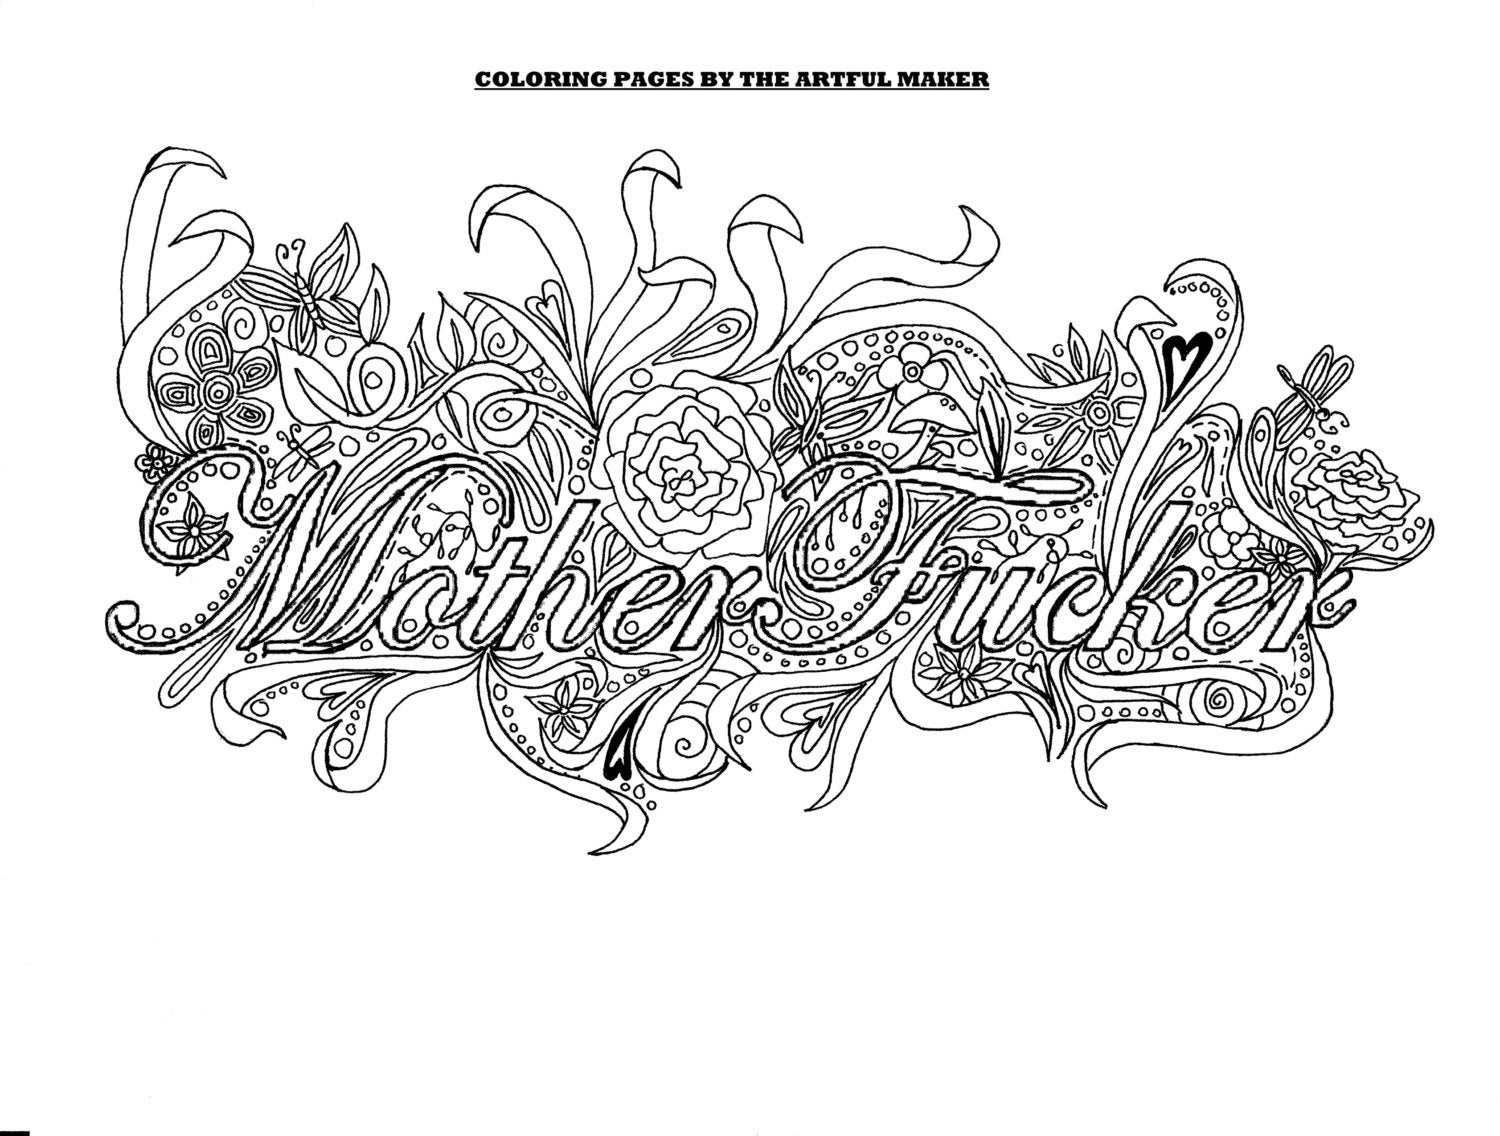 coloring page creator motherfucker adult coloring page by the artful maker etsy creator coloring page